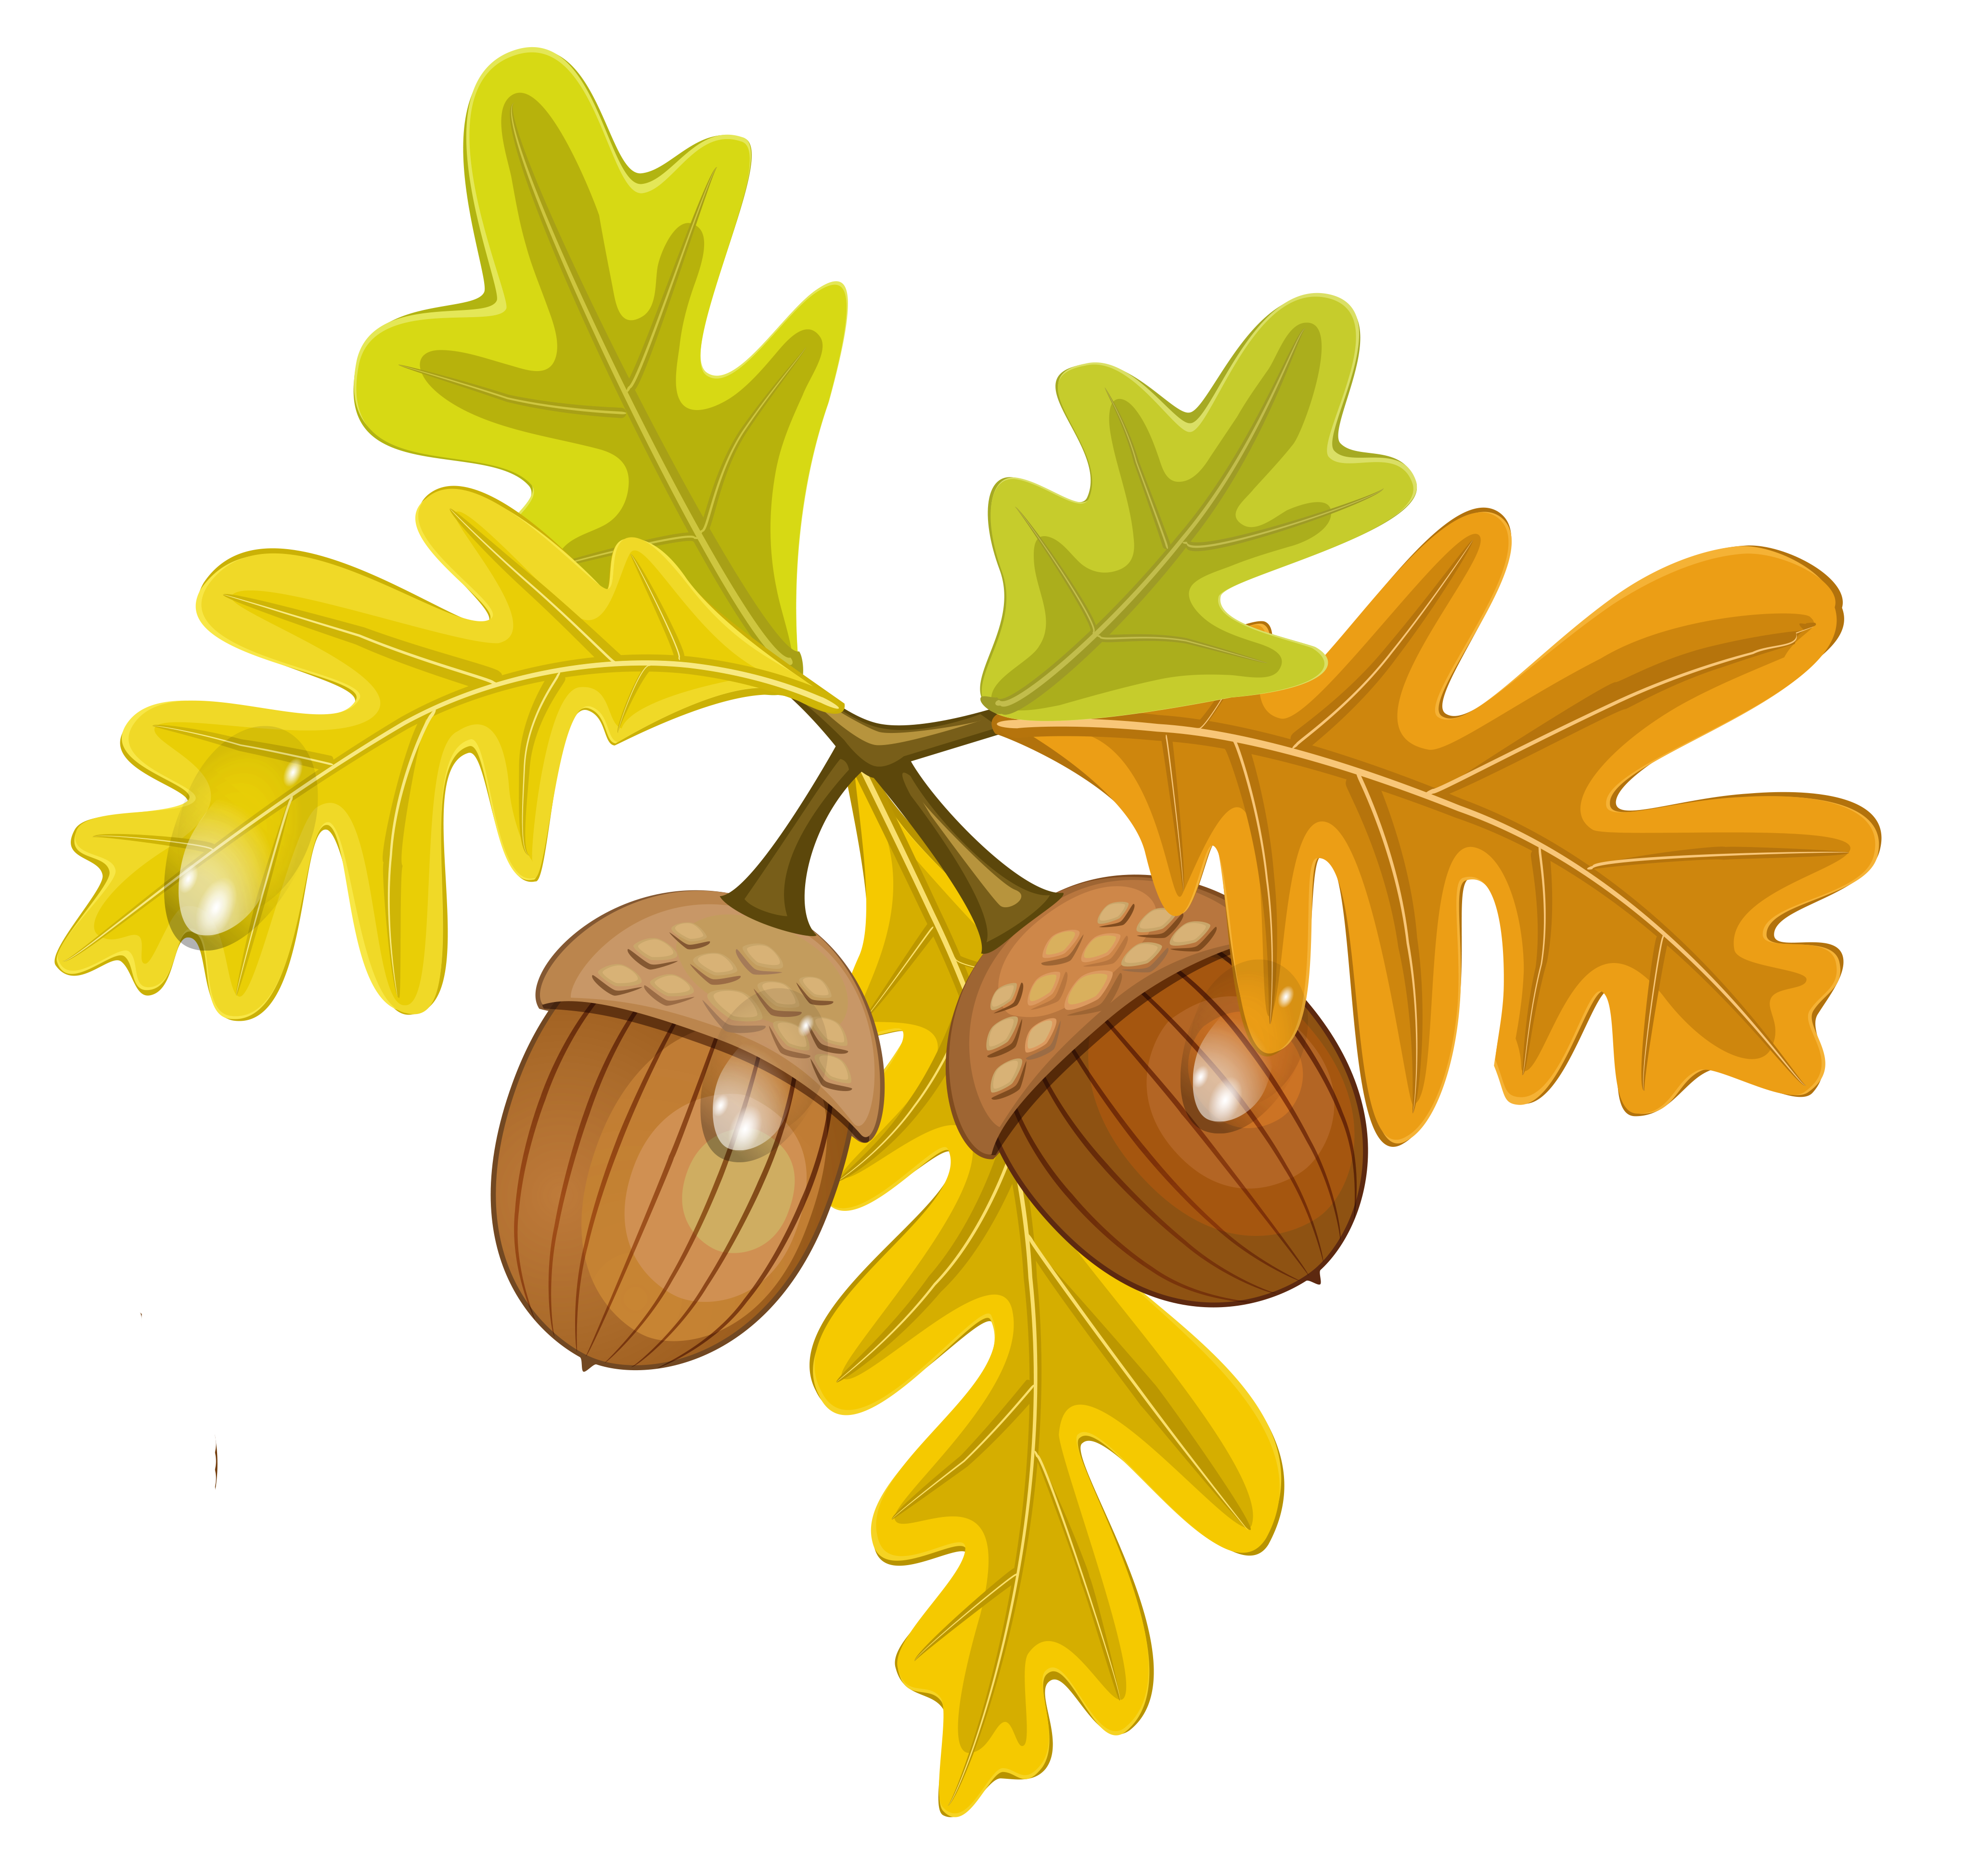 Transparent fall leaves with. Nuts clipart border